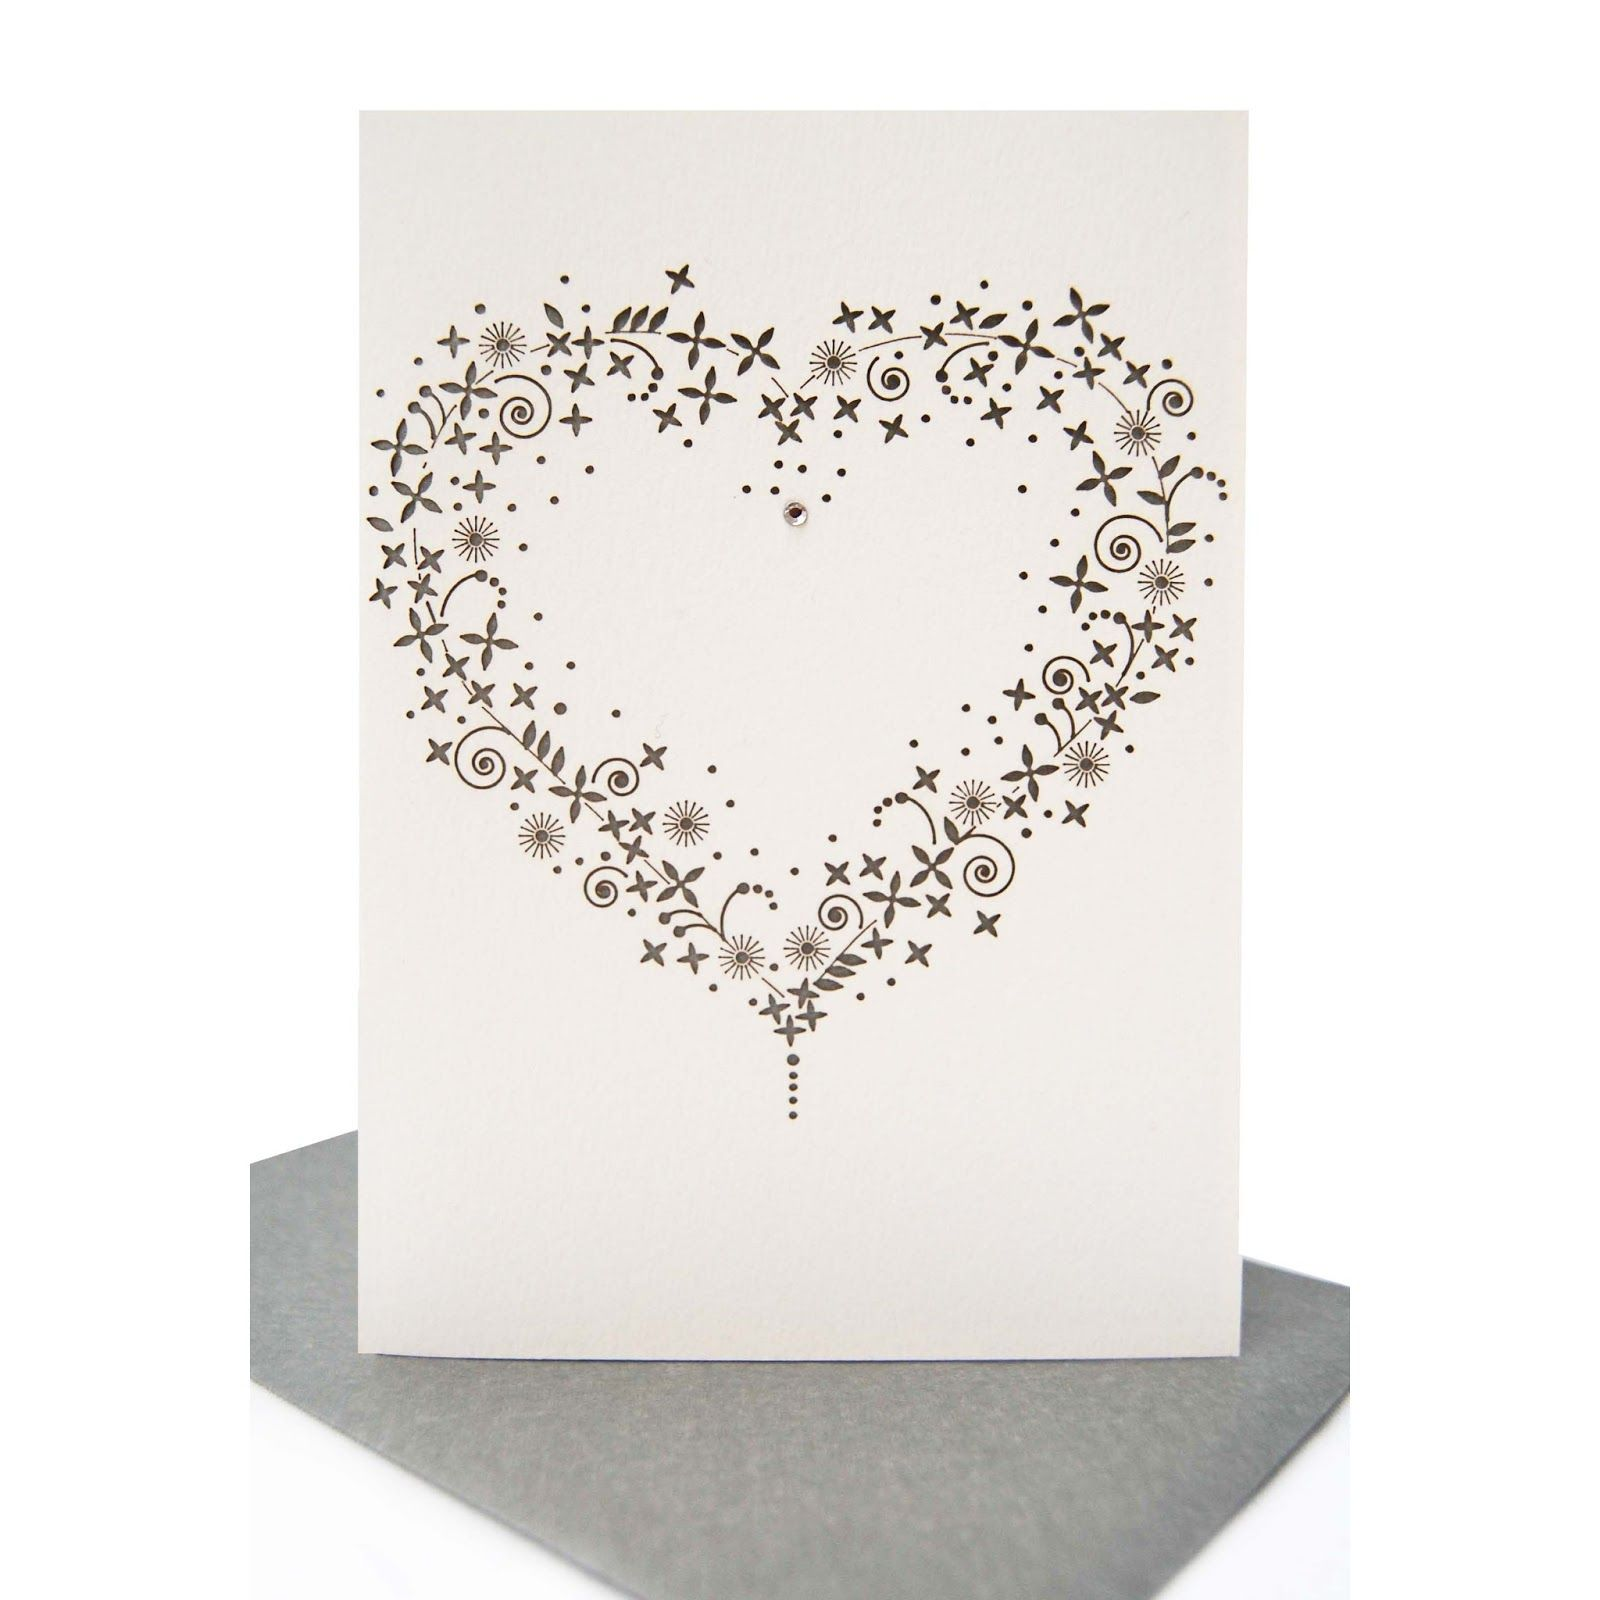 Flower Heart Lasercut Valentines Card rockvilladesignscouk – Valentines Cards Uk